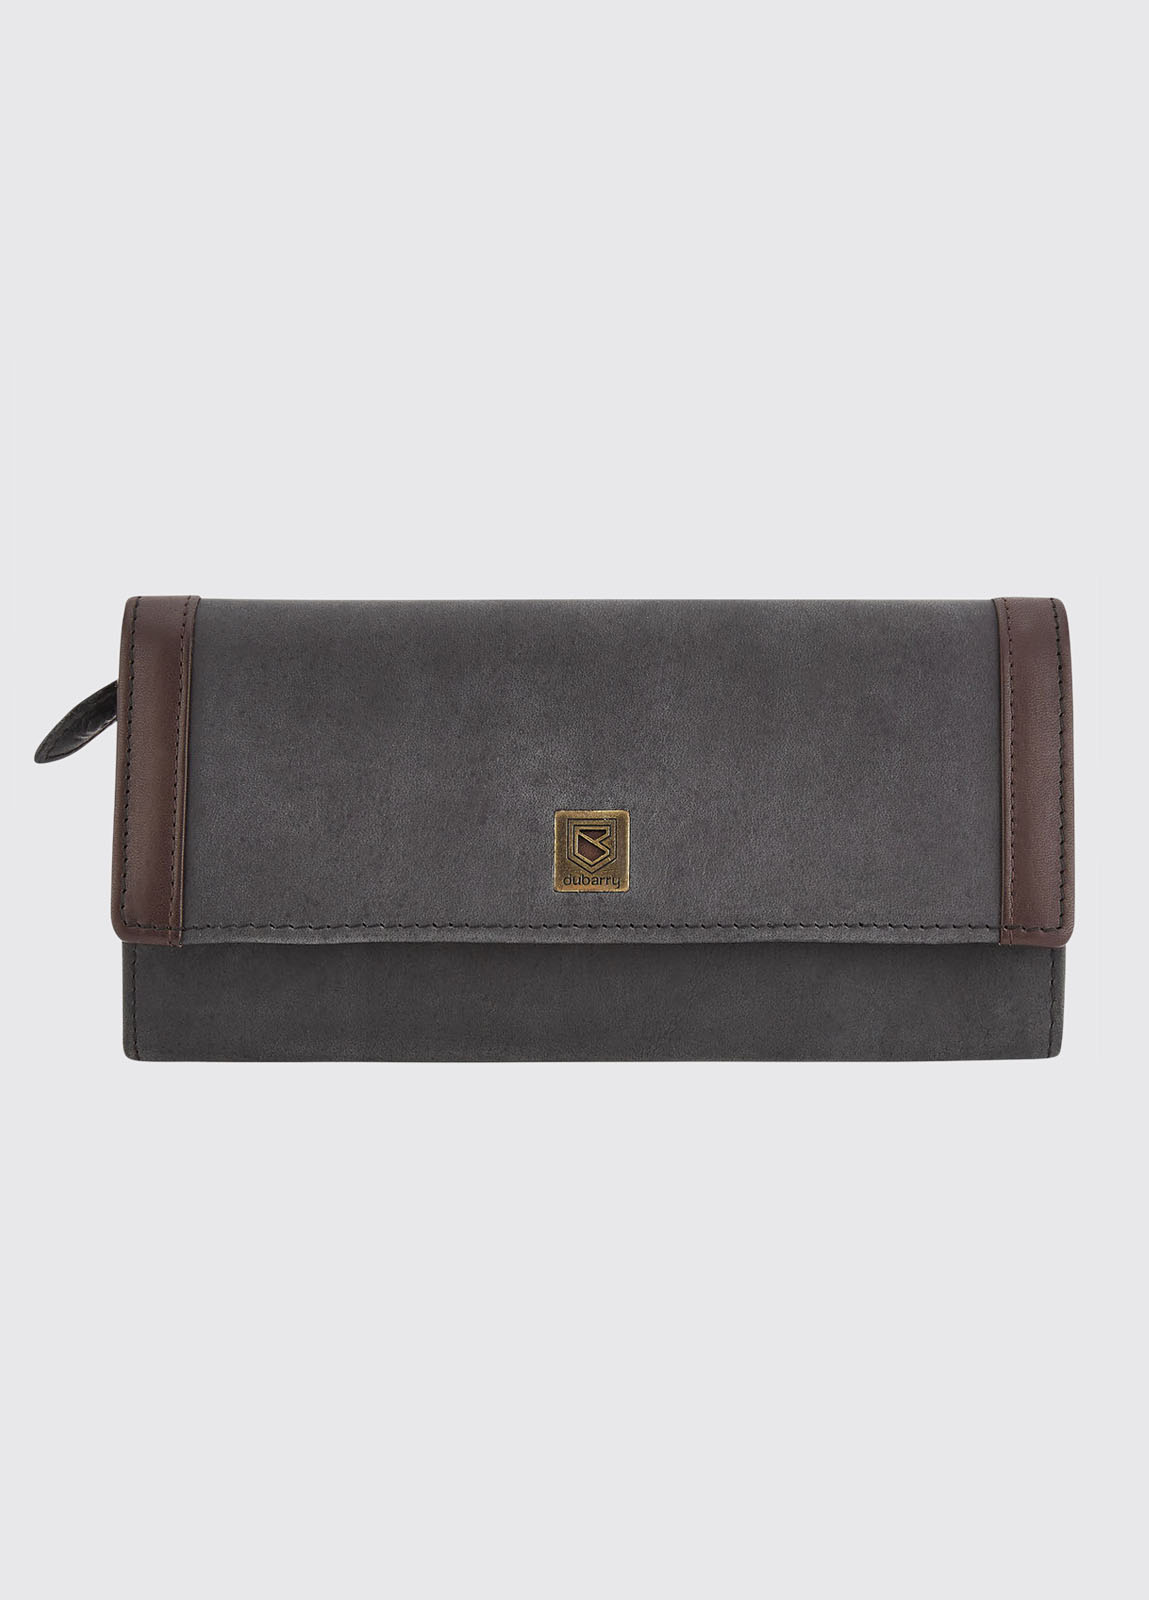 Collinstown Leather Wallet - Black/Brown